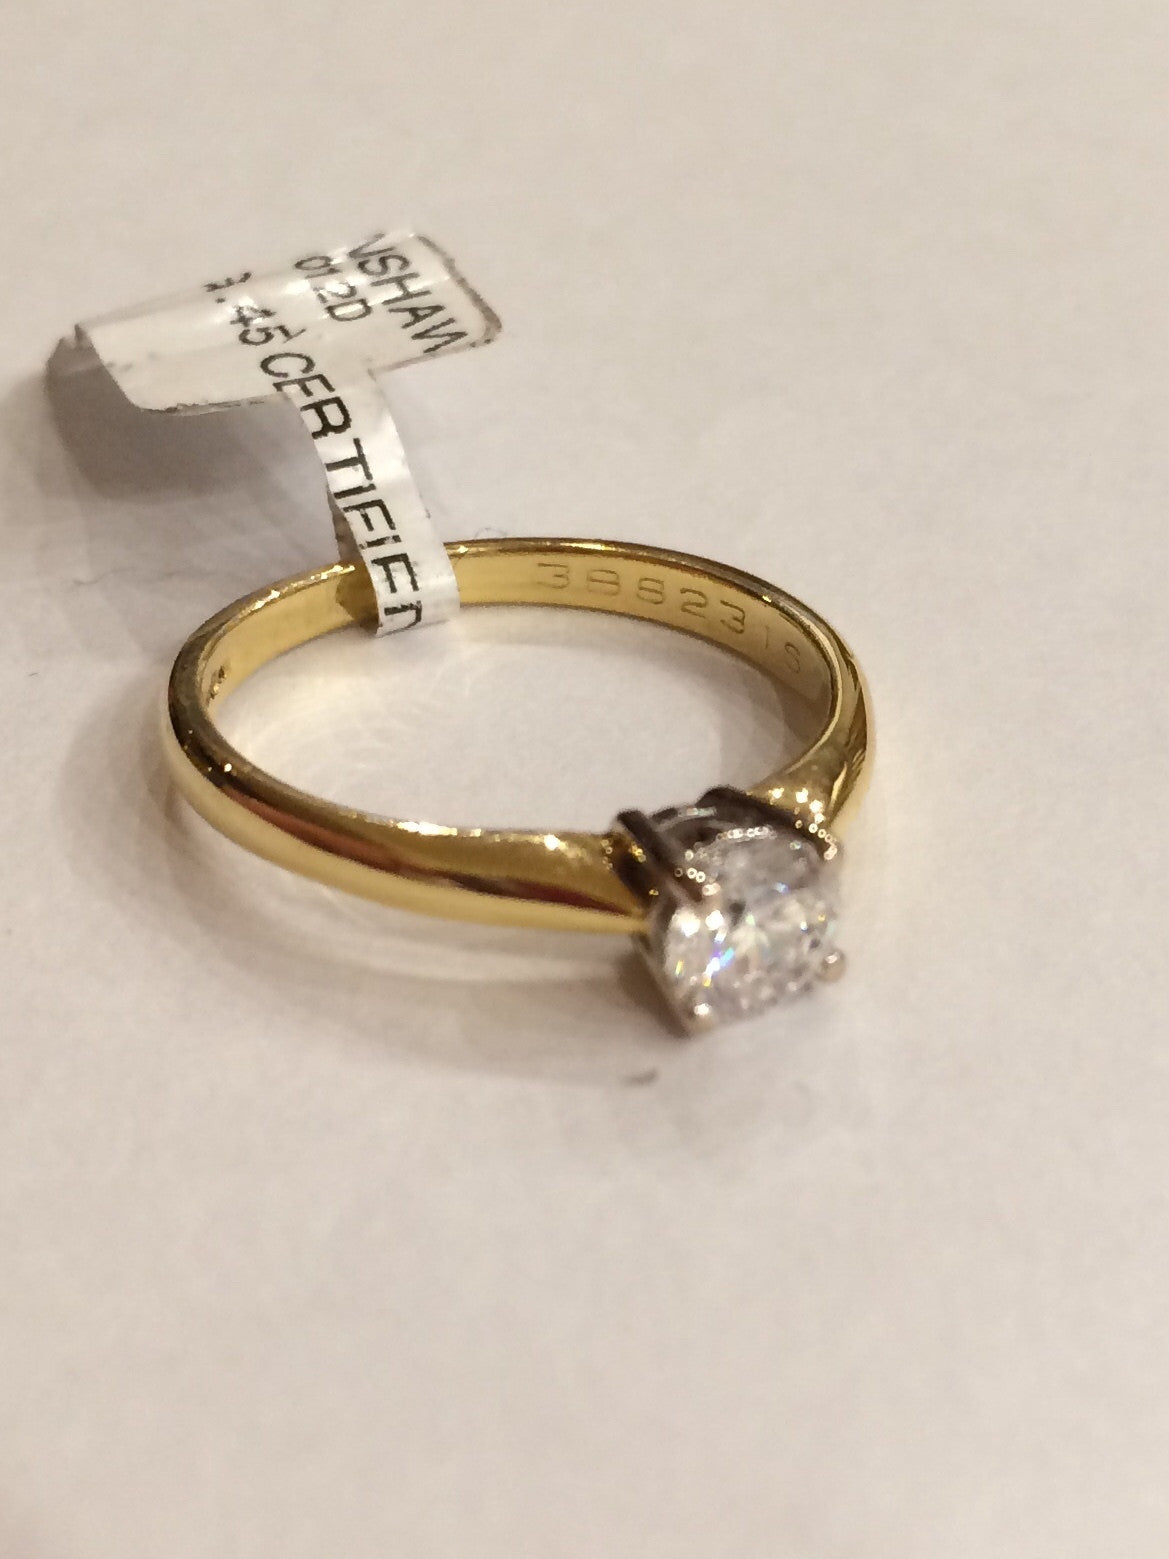 18CT YELLOW GOLD .45 CERTIFIED DIAMOND RING 07092012D - Robert Openshaw Fine Jewellery